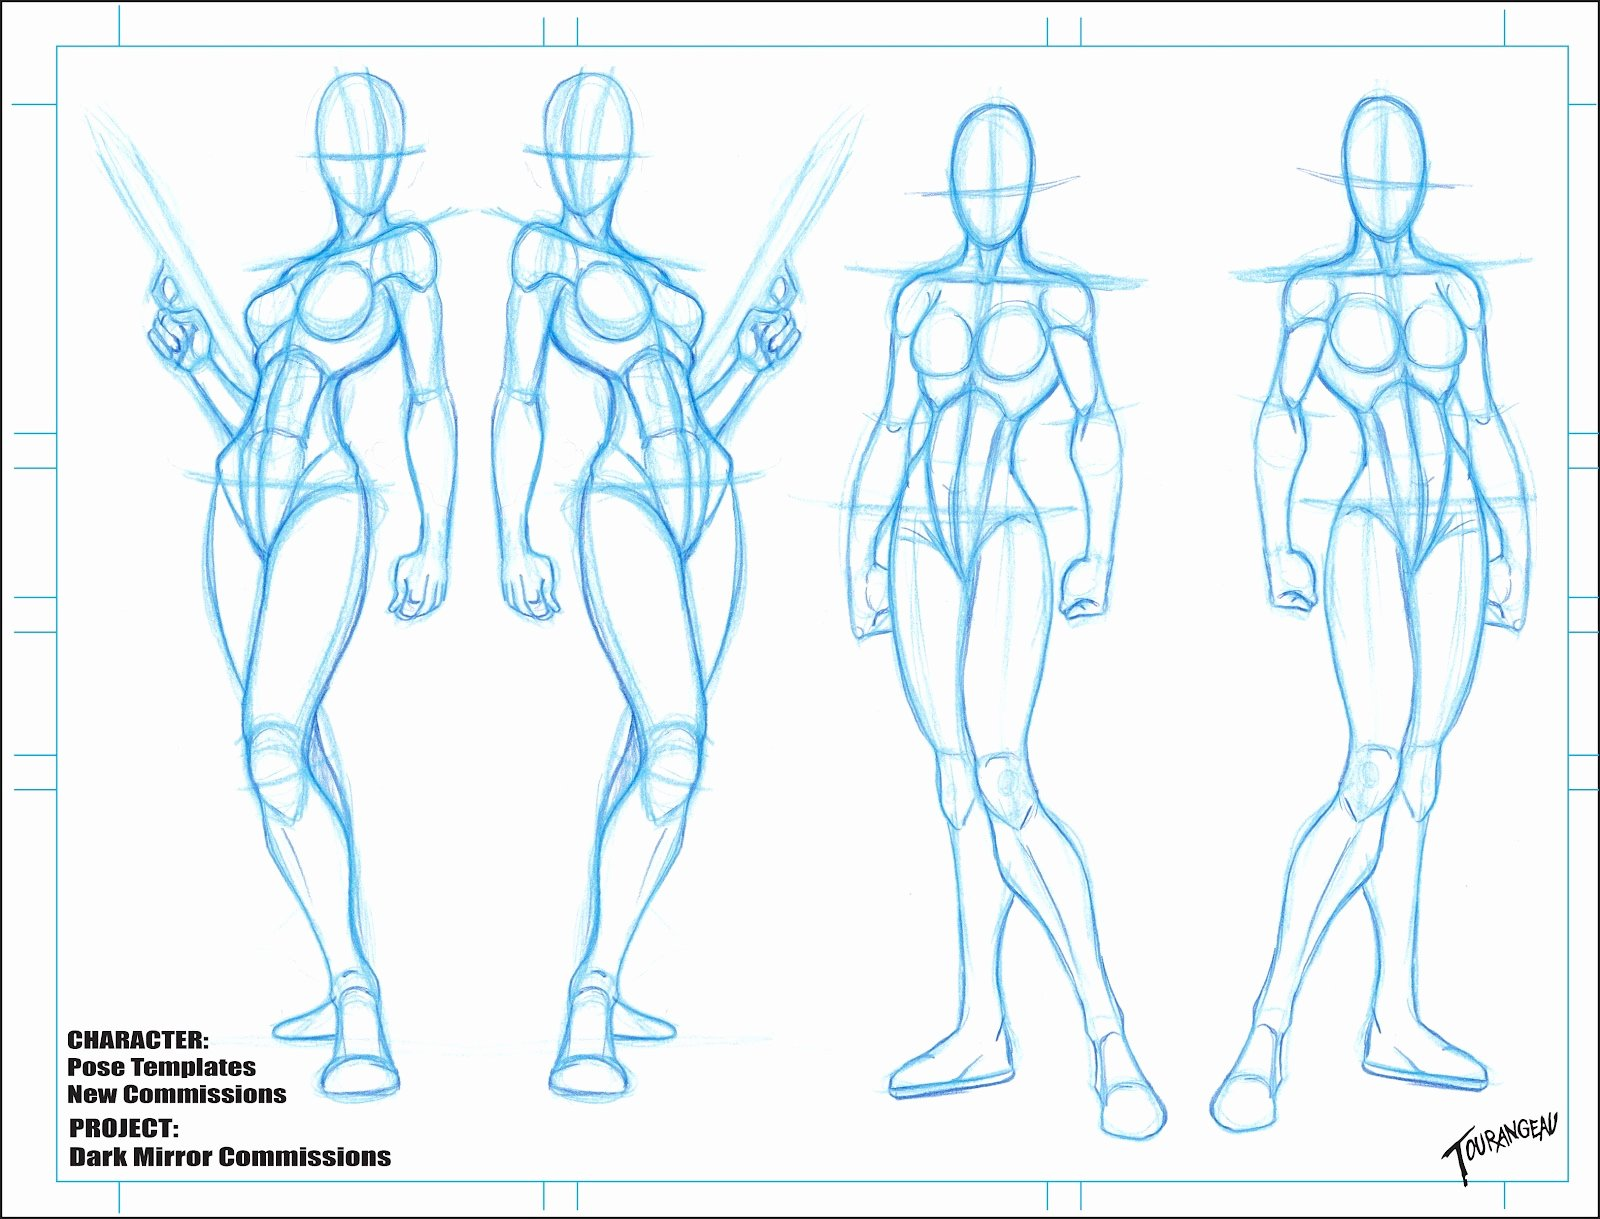 Blank Female Body Template Awesome the Art Sean tourangeau New Character Blanks